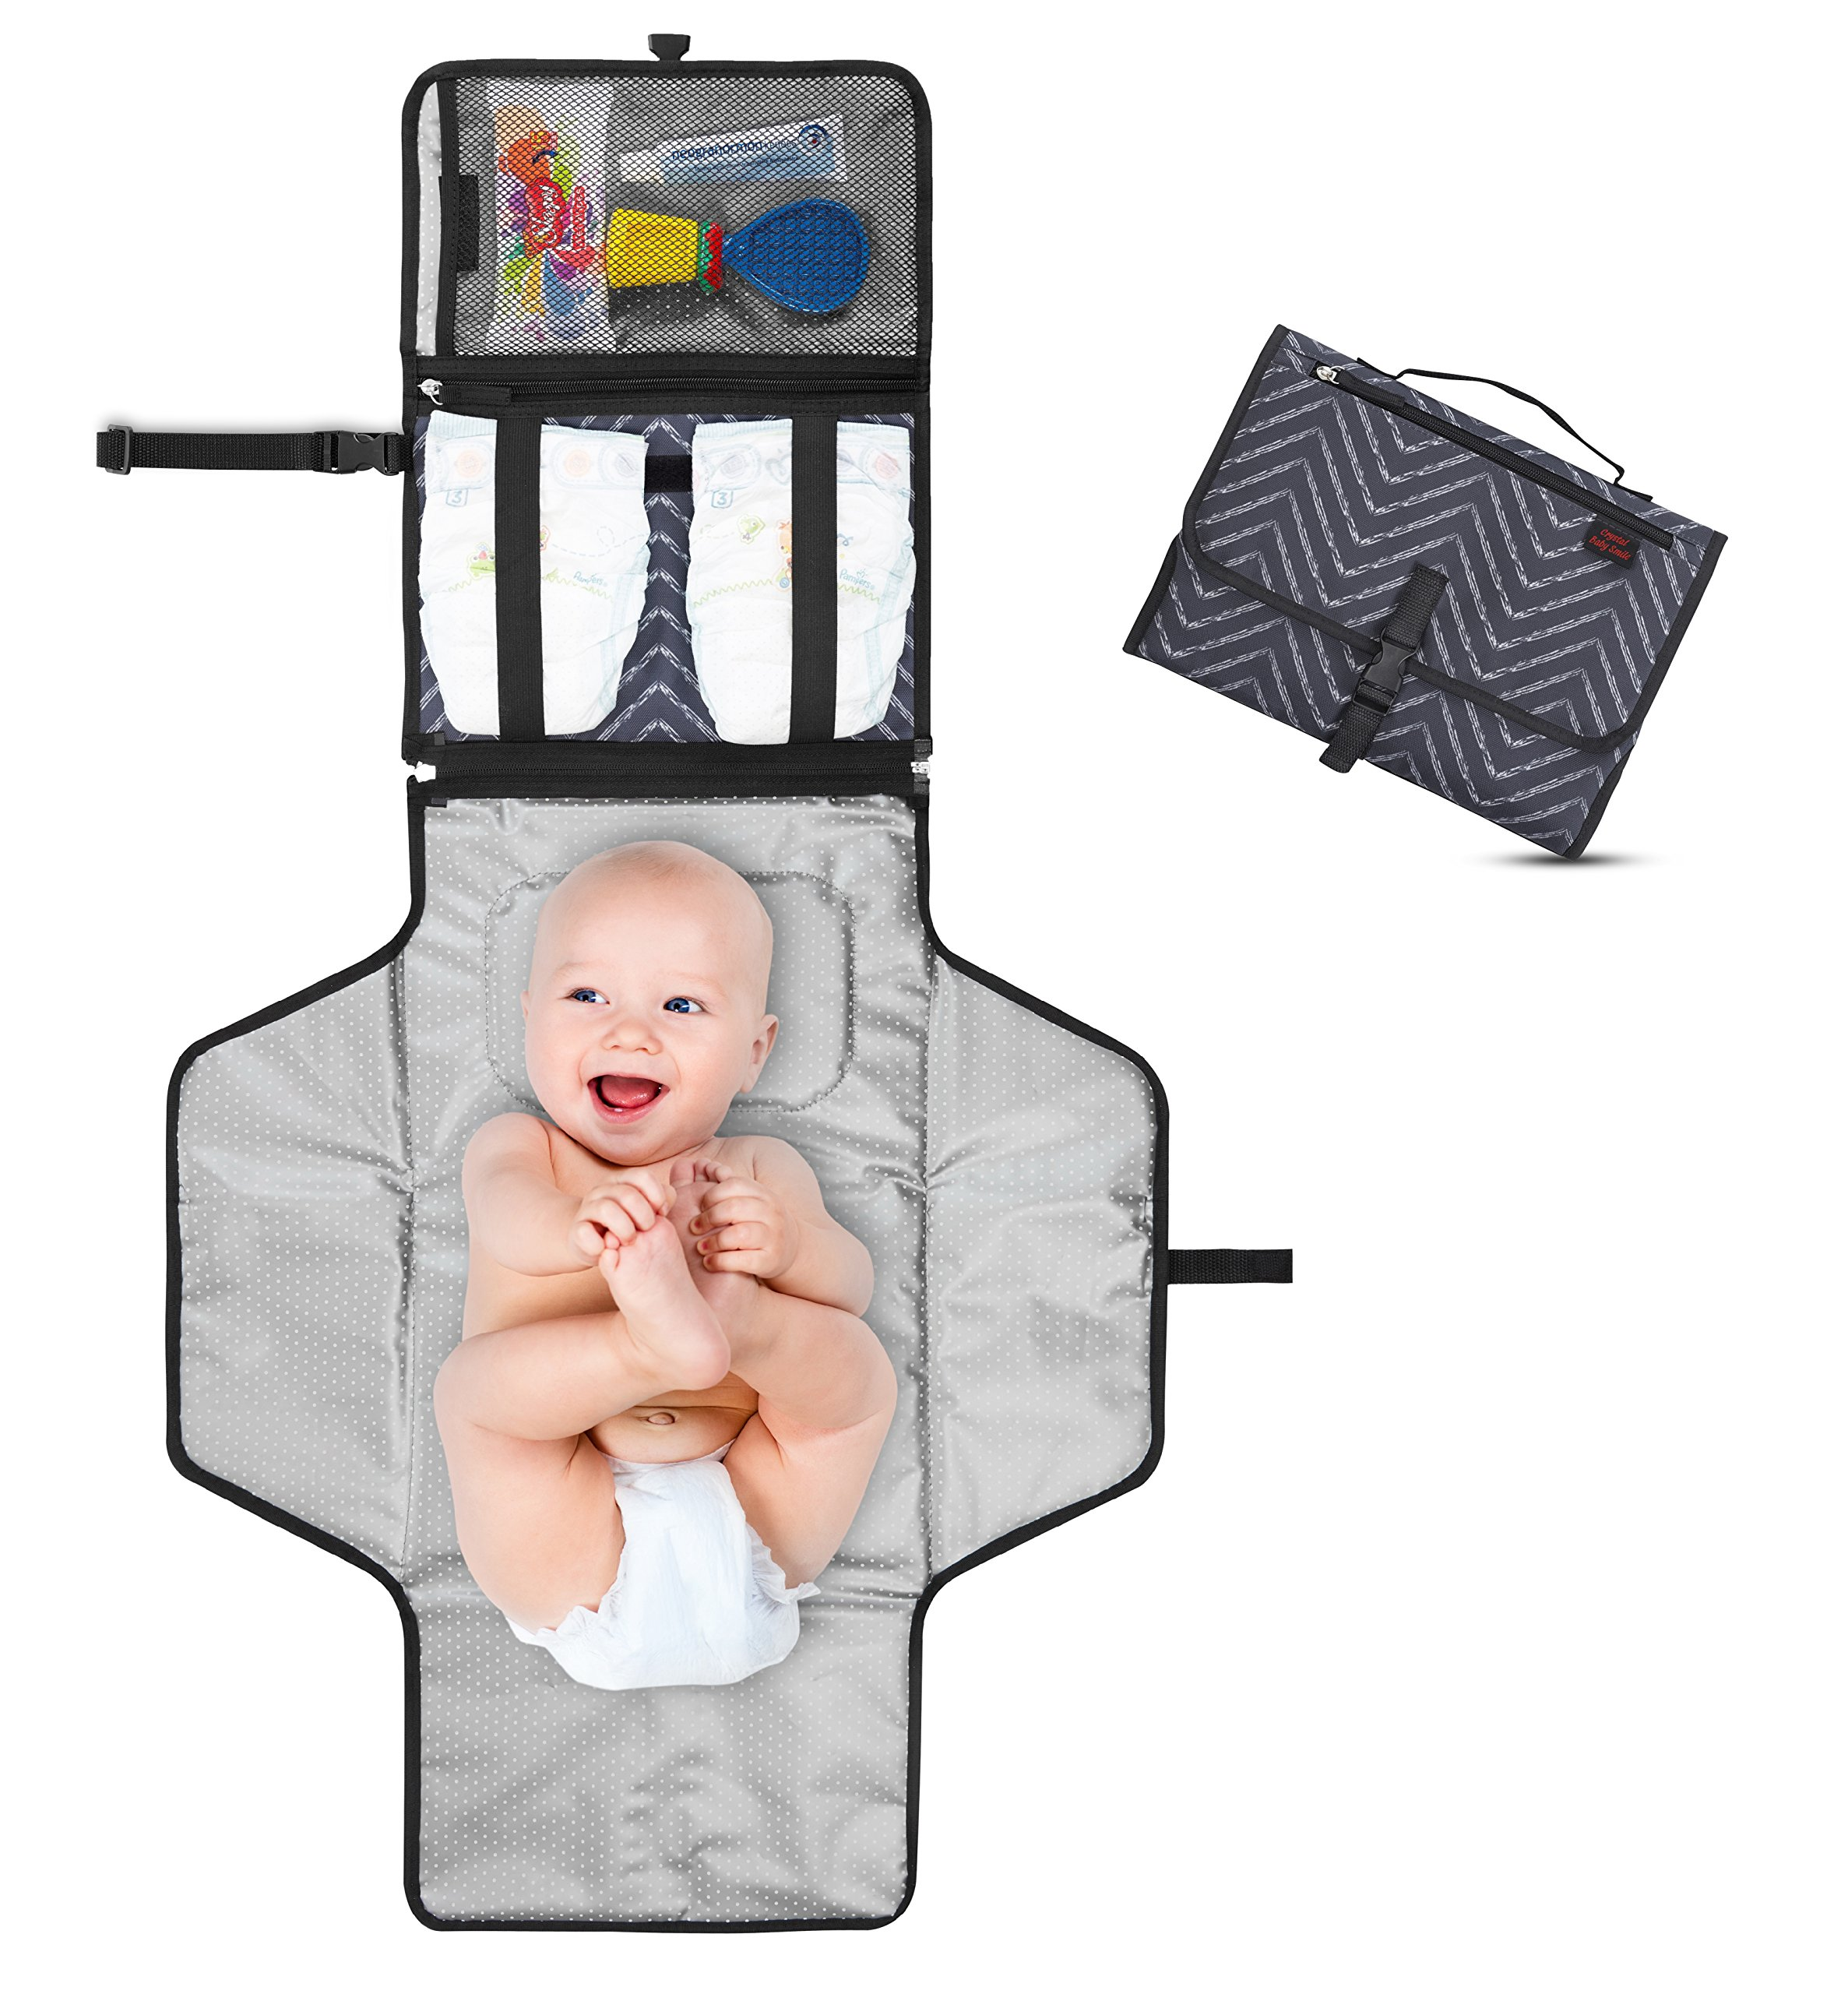 Crystal Baby Smile Portable Changing Pad - Diaper Clutch - Lightweight Travel Station Kit for Baby Diapering - Entirely Padded, Detachable and Wipeable Mat - Mesh and Zippered Pockets - Dark Gray